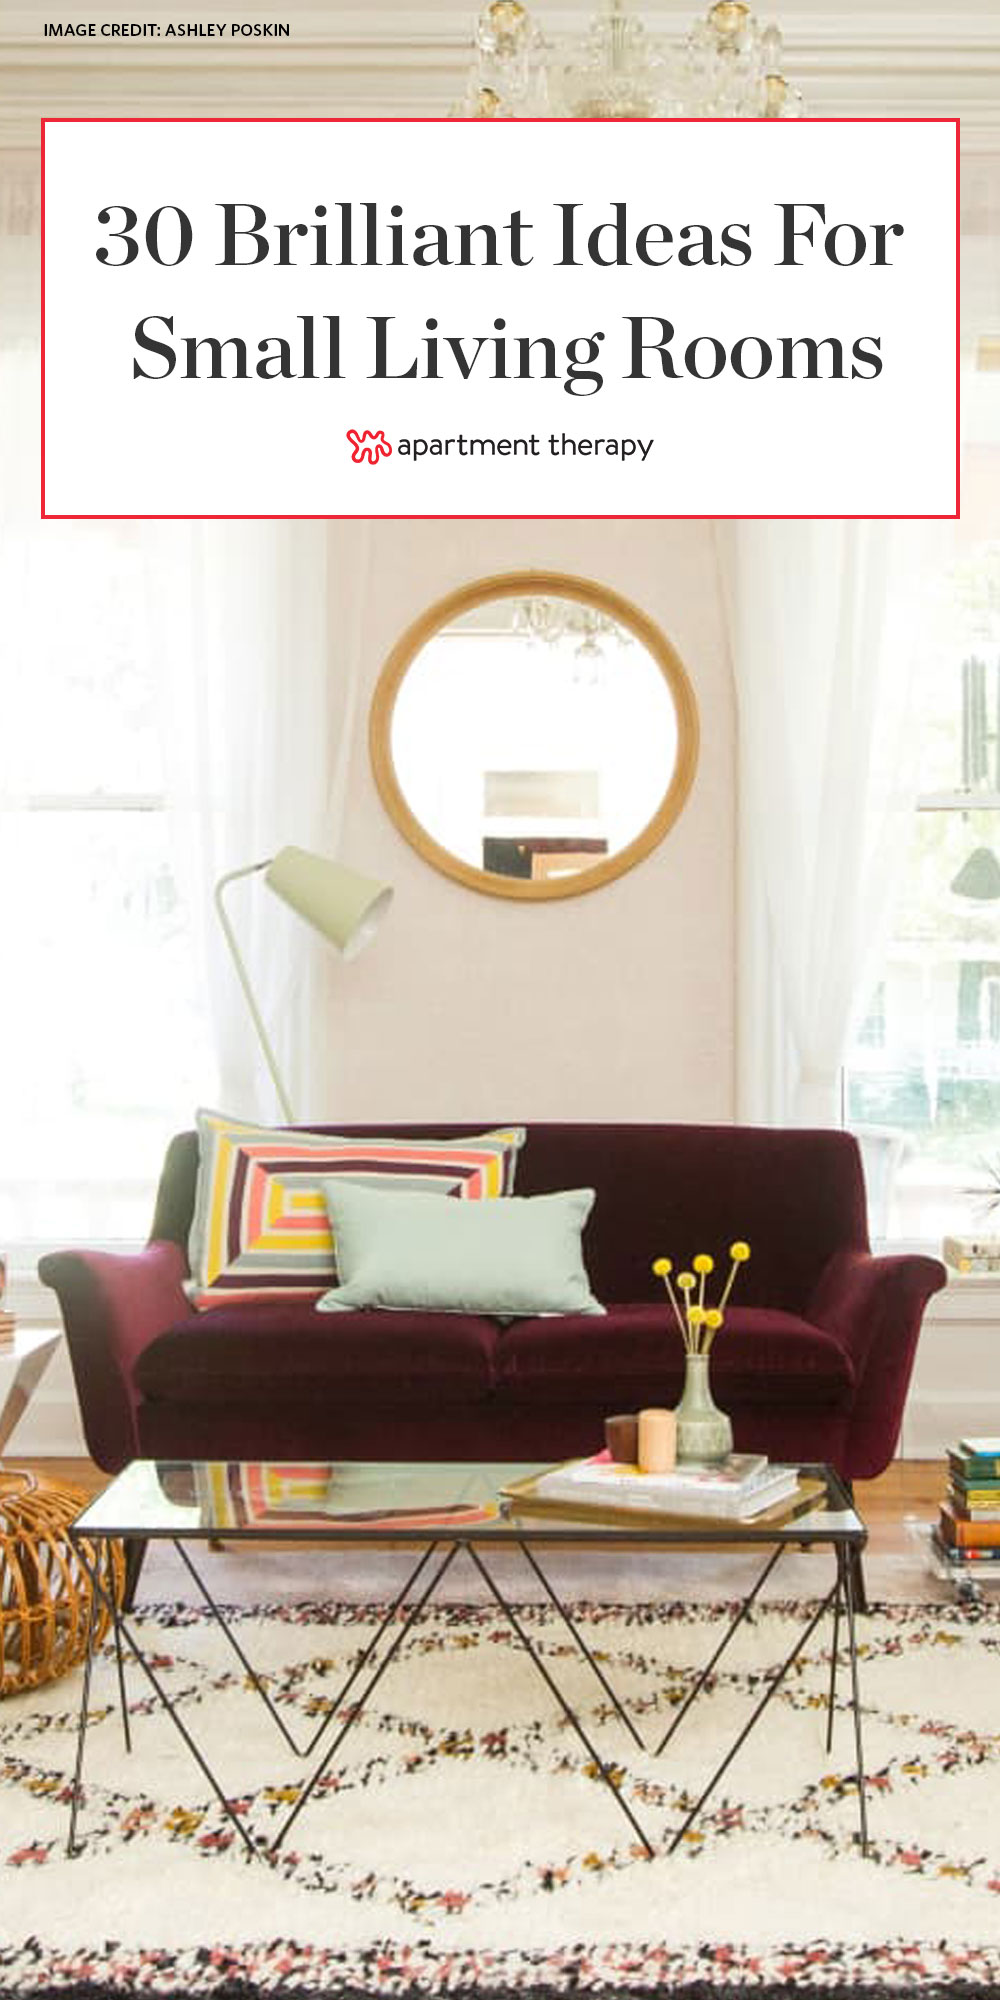 8 Small Living Room Decorating & Design Ideas - How to Decorate a